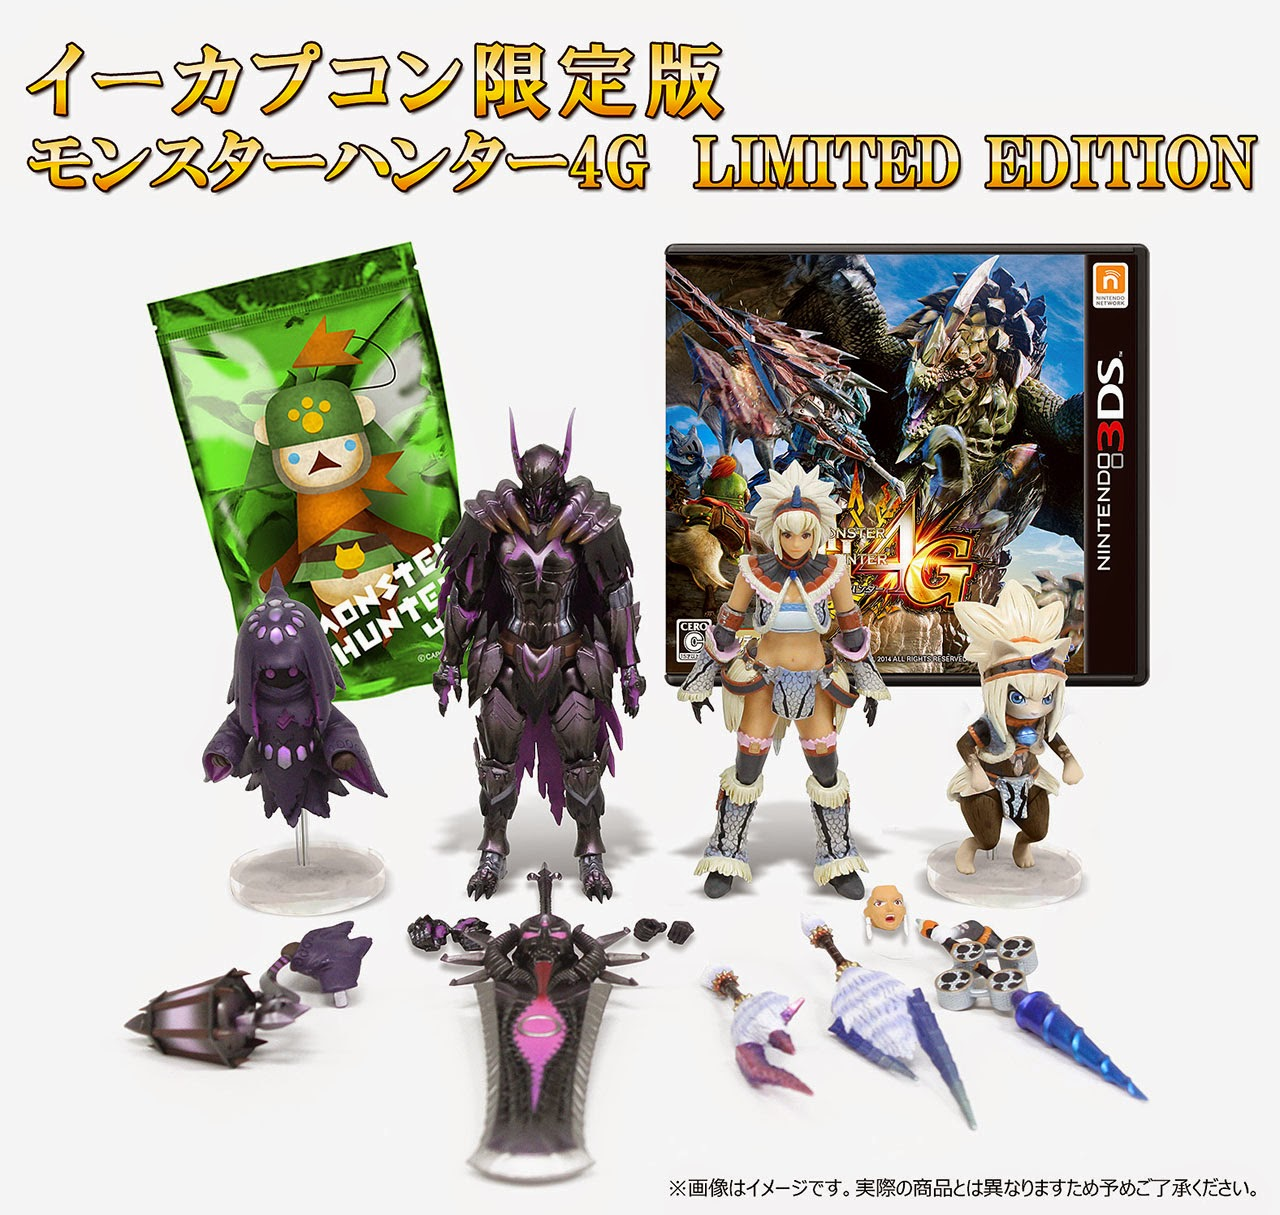 http://www.shopncsx.com/monsterhunter4ge-capcomlimitededition.aspx